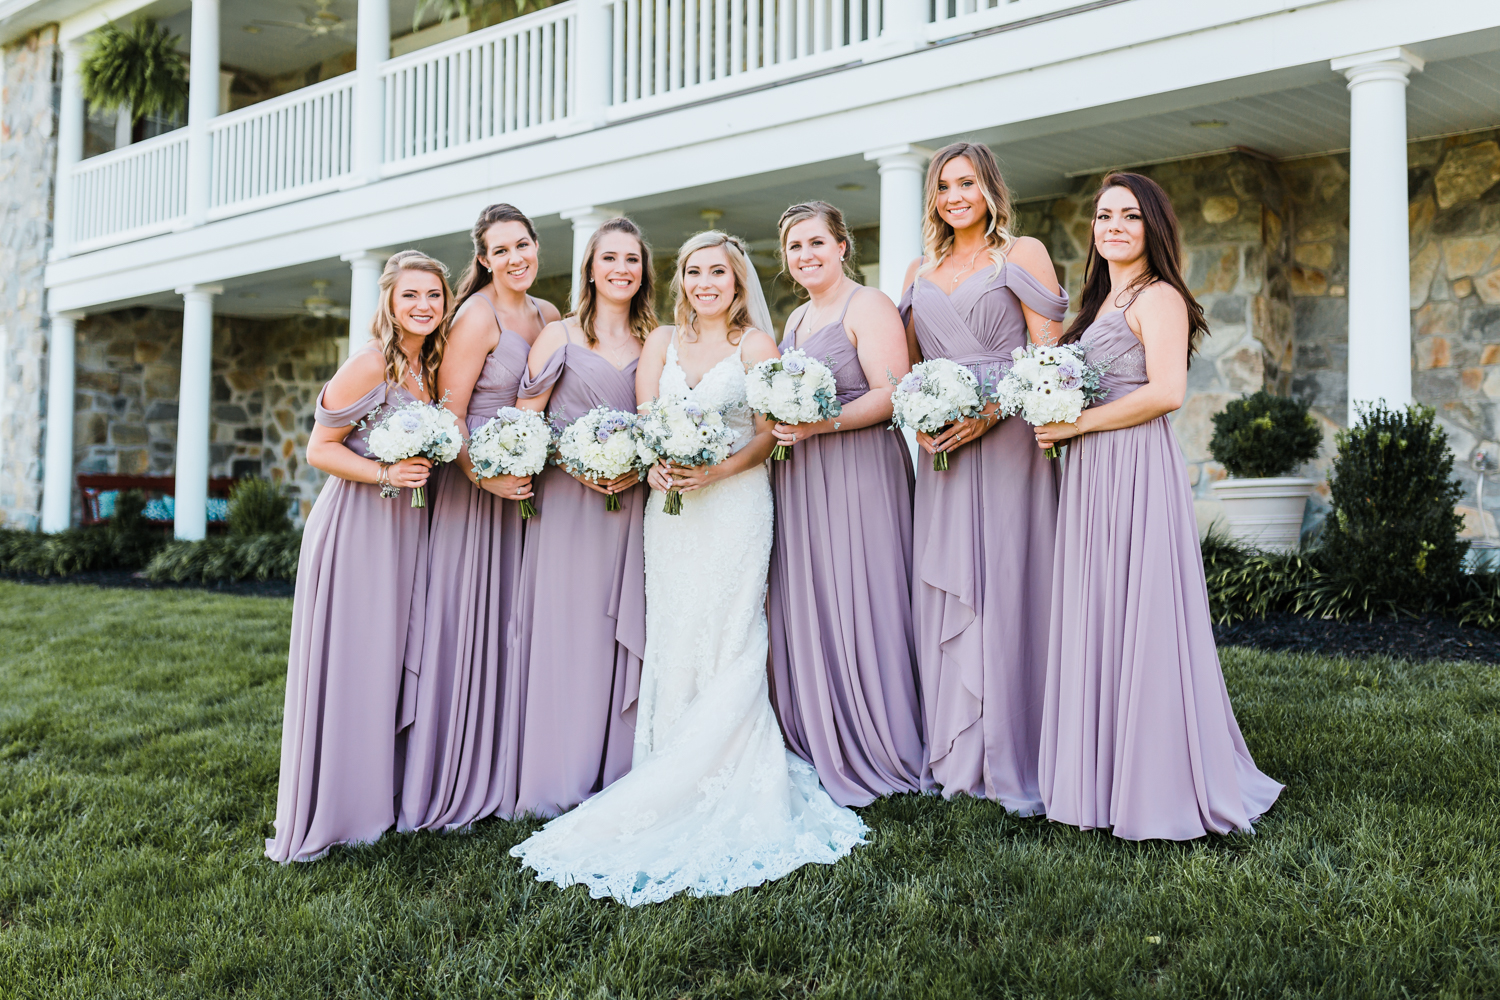 Bridesmaids with bride group - Pond View Farm Maryland